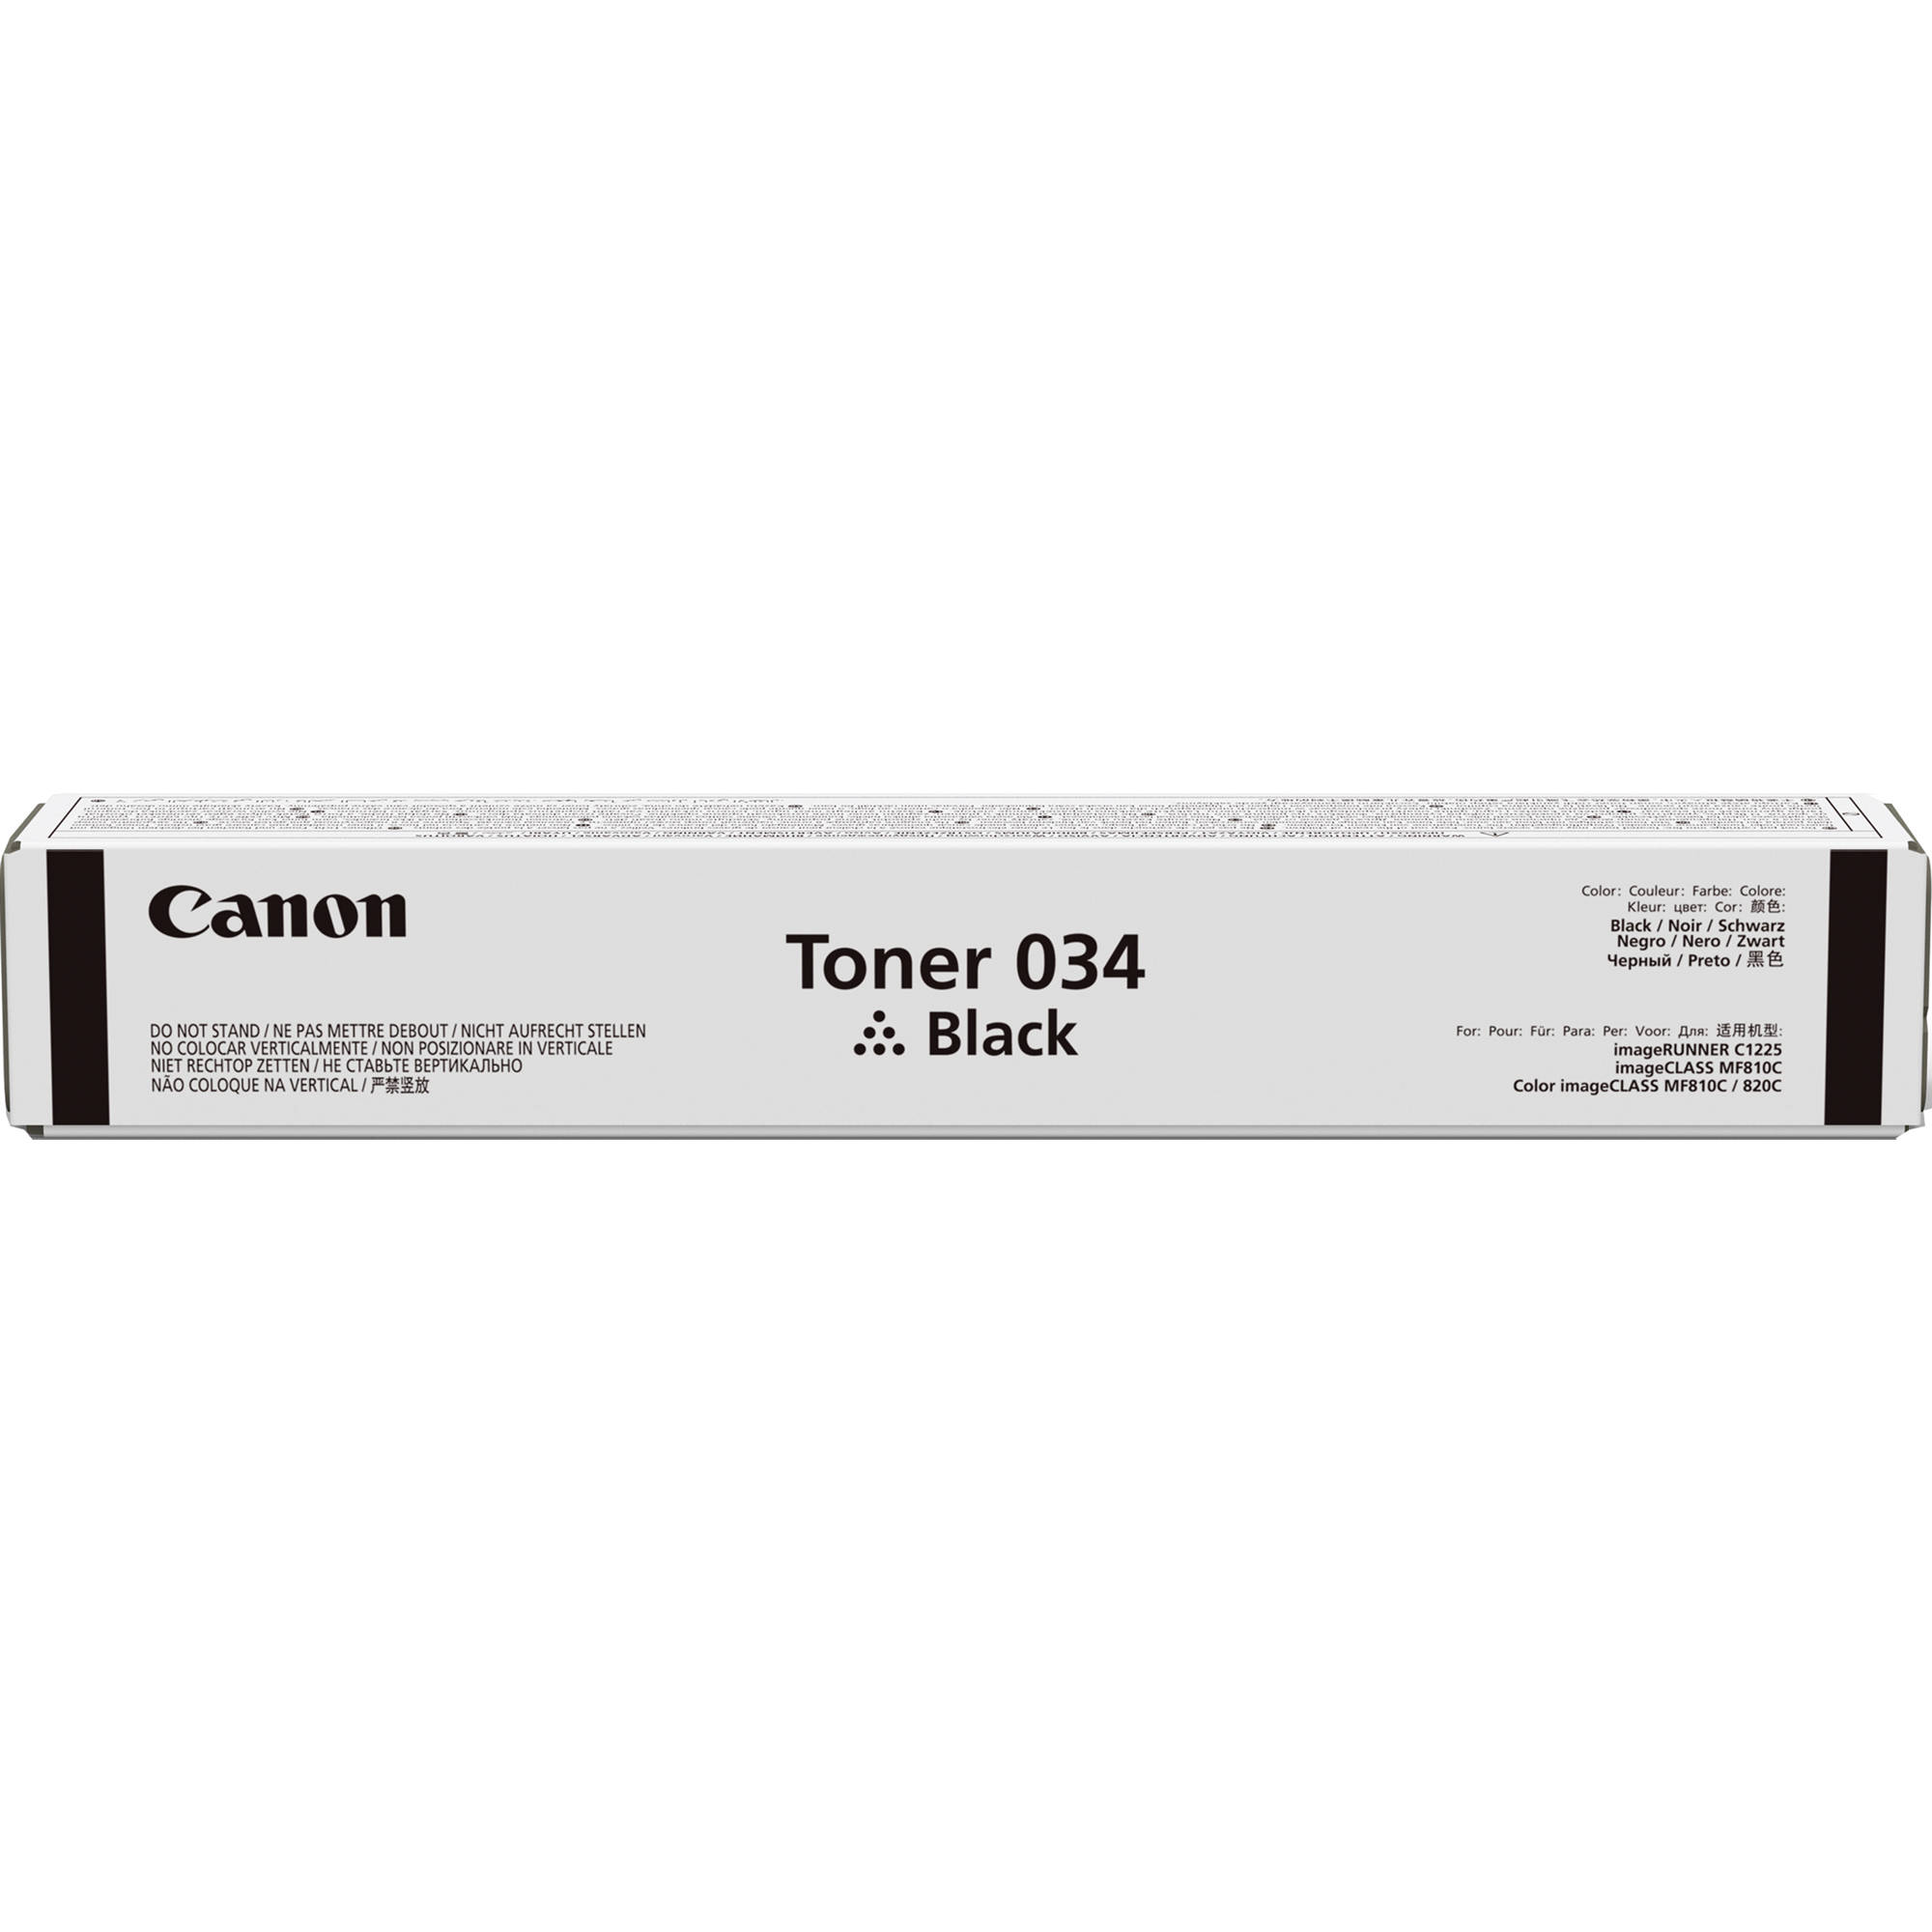 CANON-034-BLACK--CF9454B001AA--CARTUS-TONER-BLACK